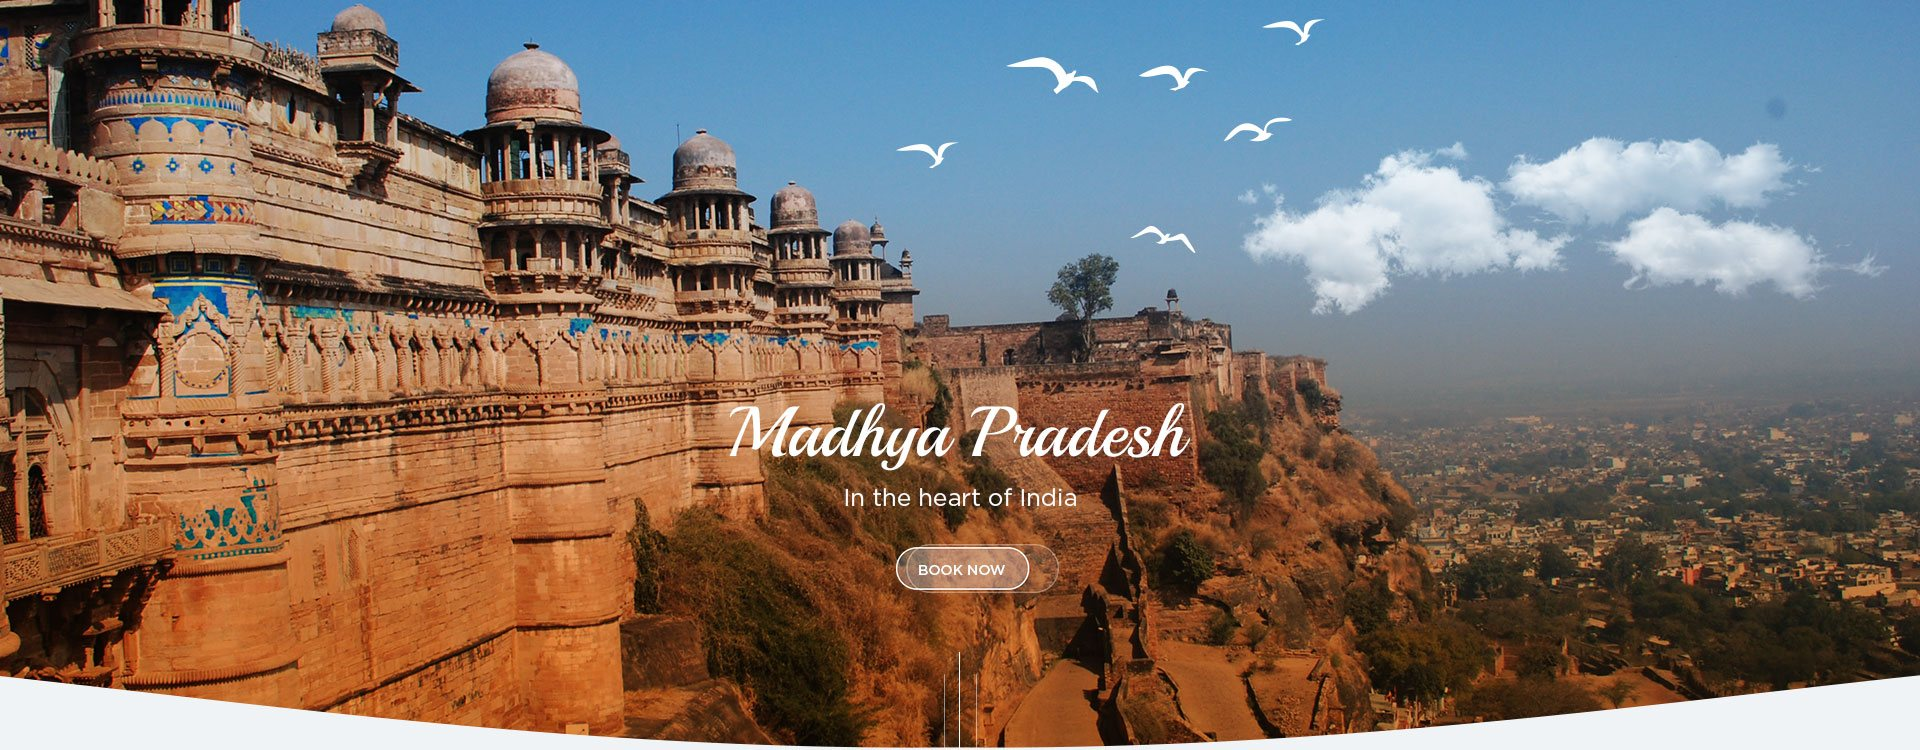 Madhya Pradesh Tour Operator - Eastern Meadows Tour